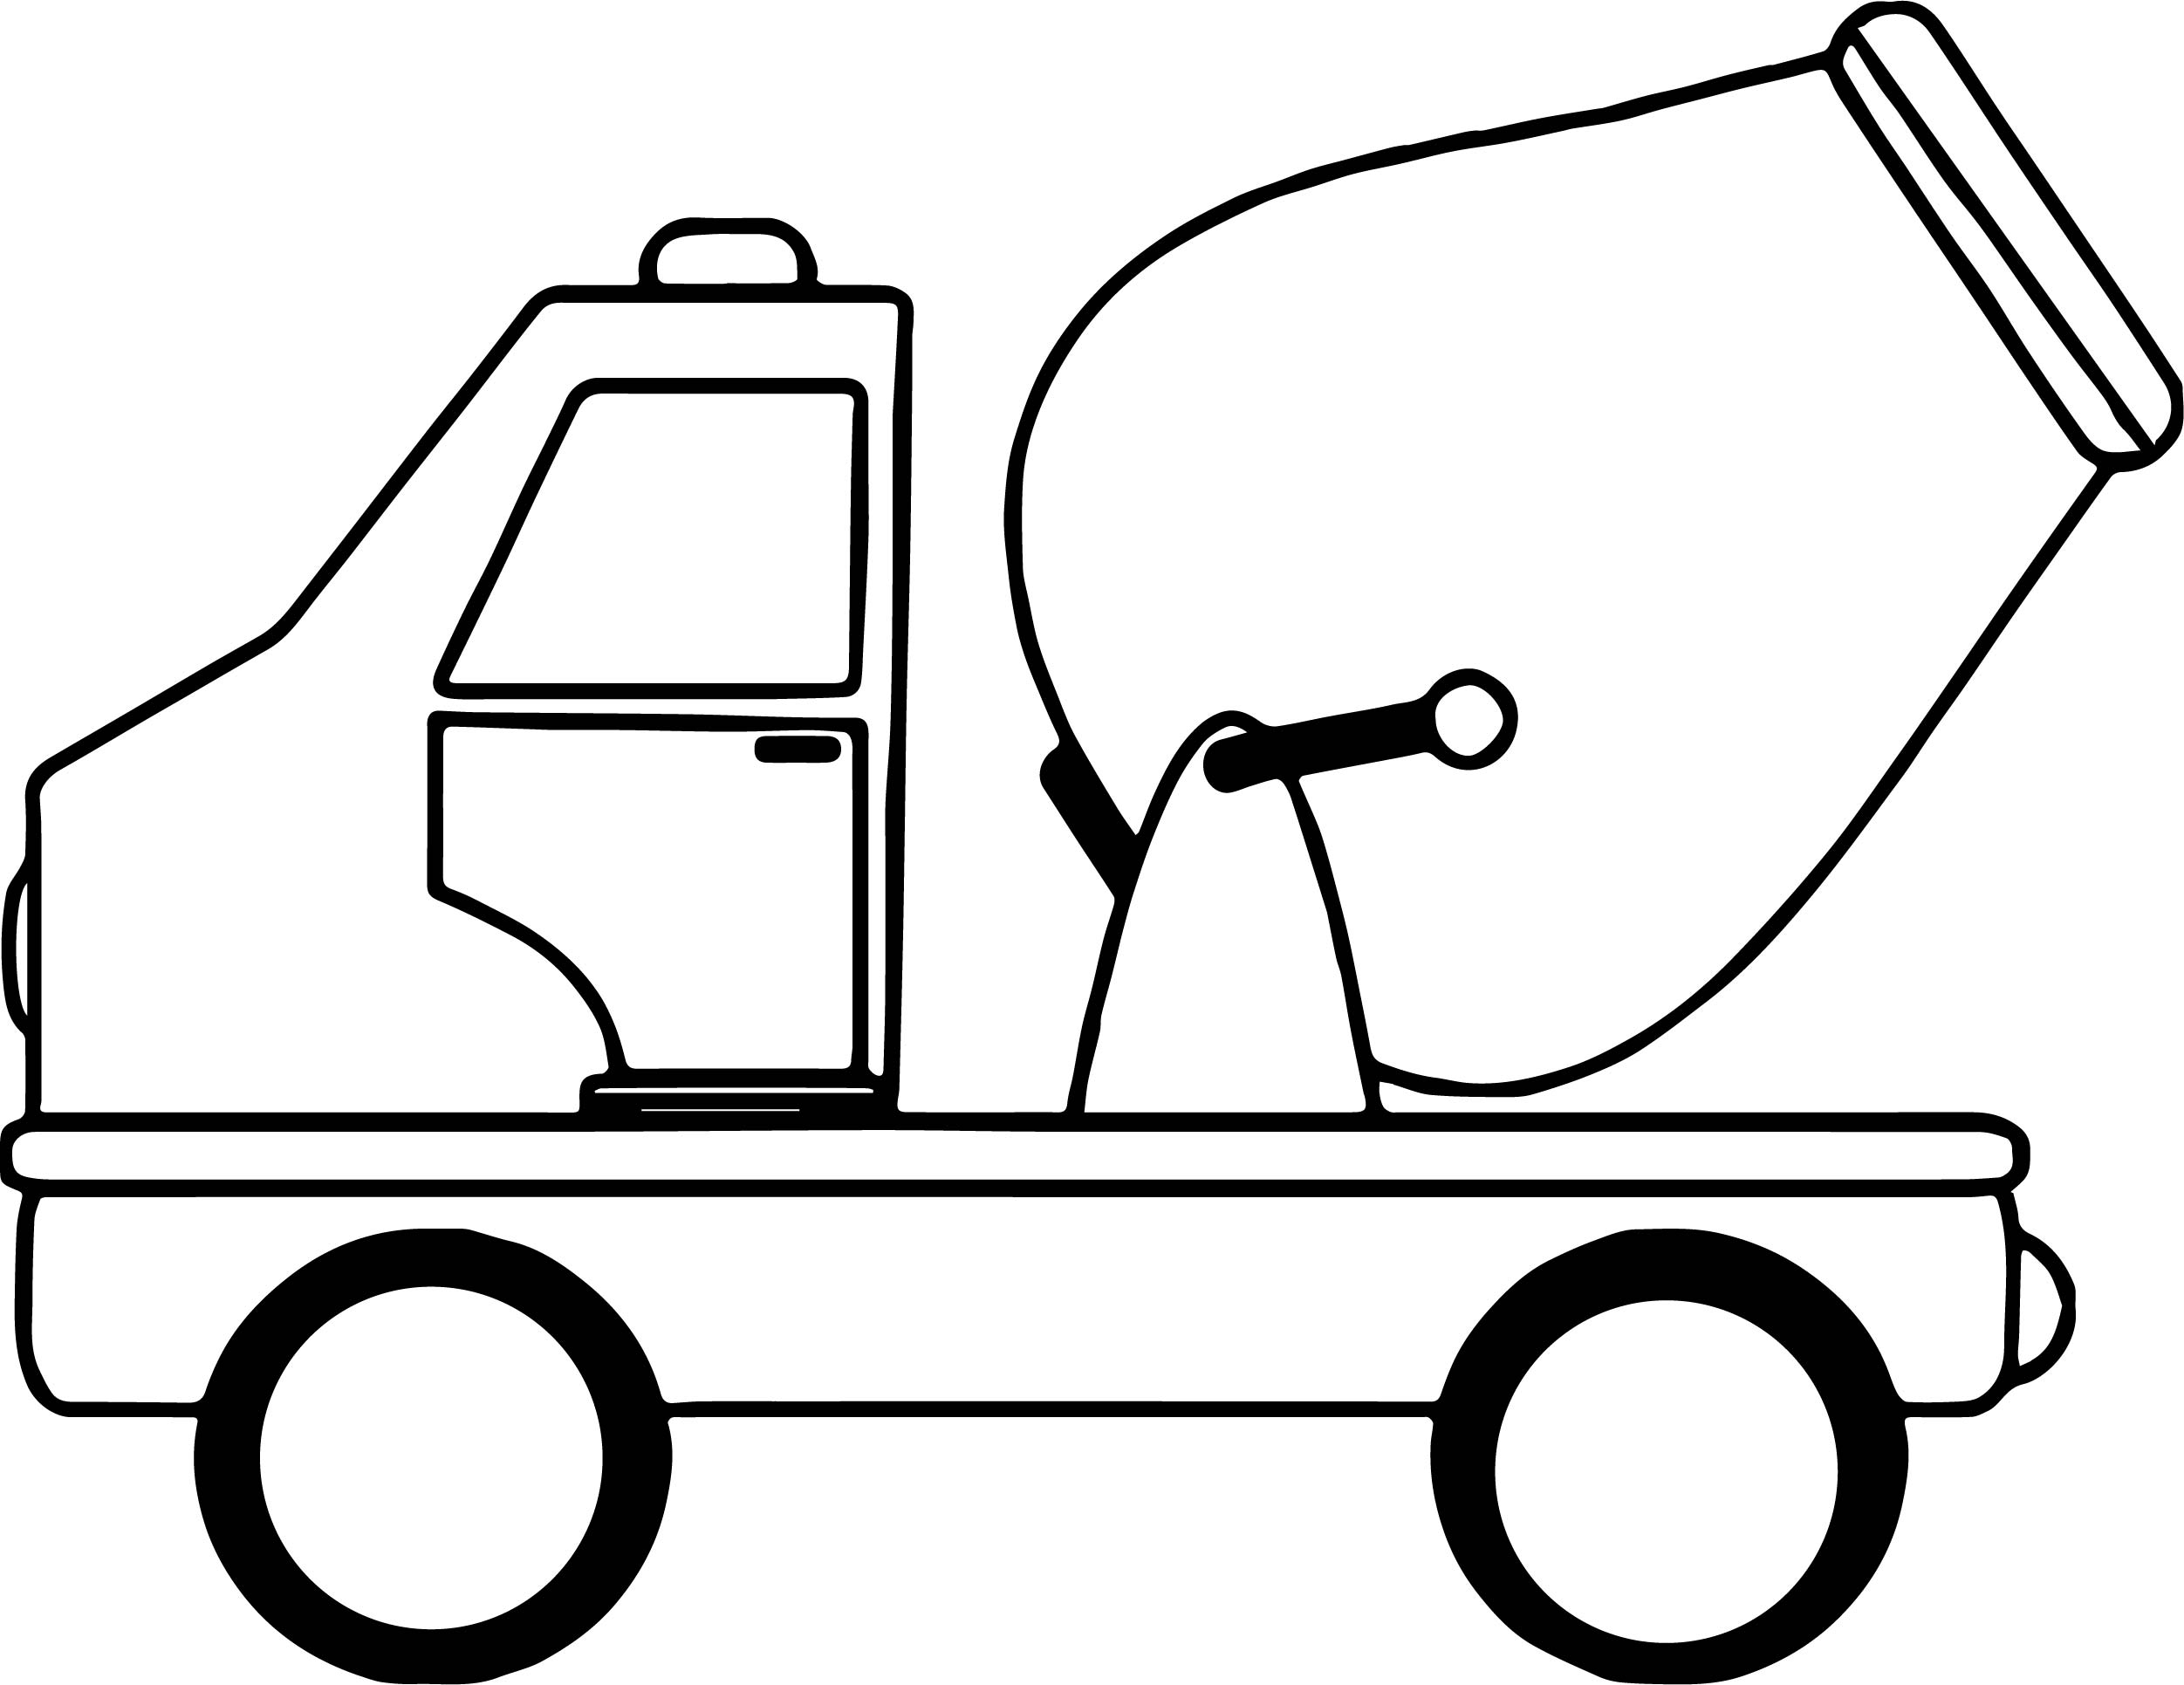 Vehicle clipart coloring Wecoloringpage Toy Page Cement Toy